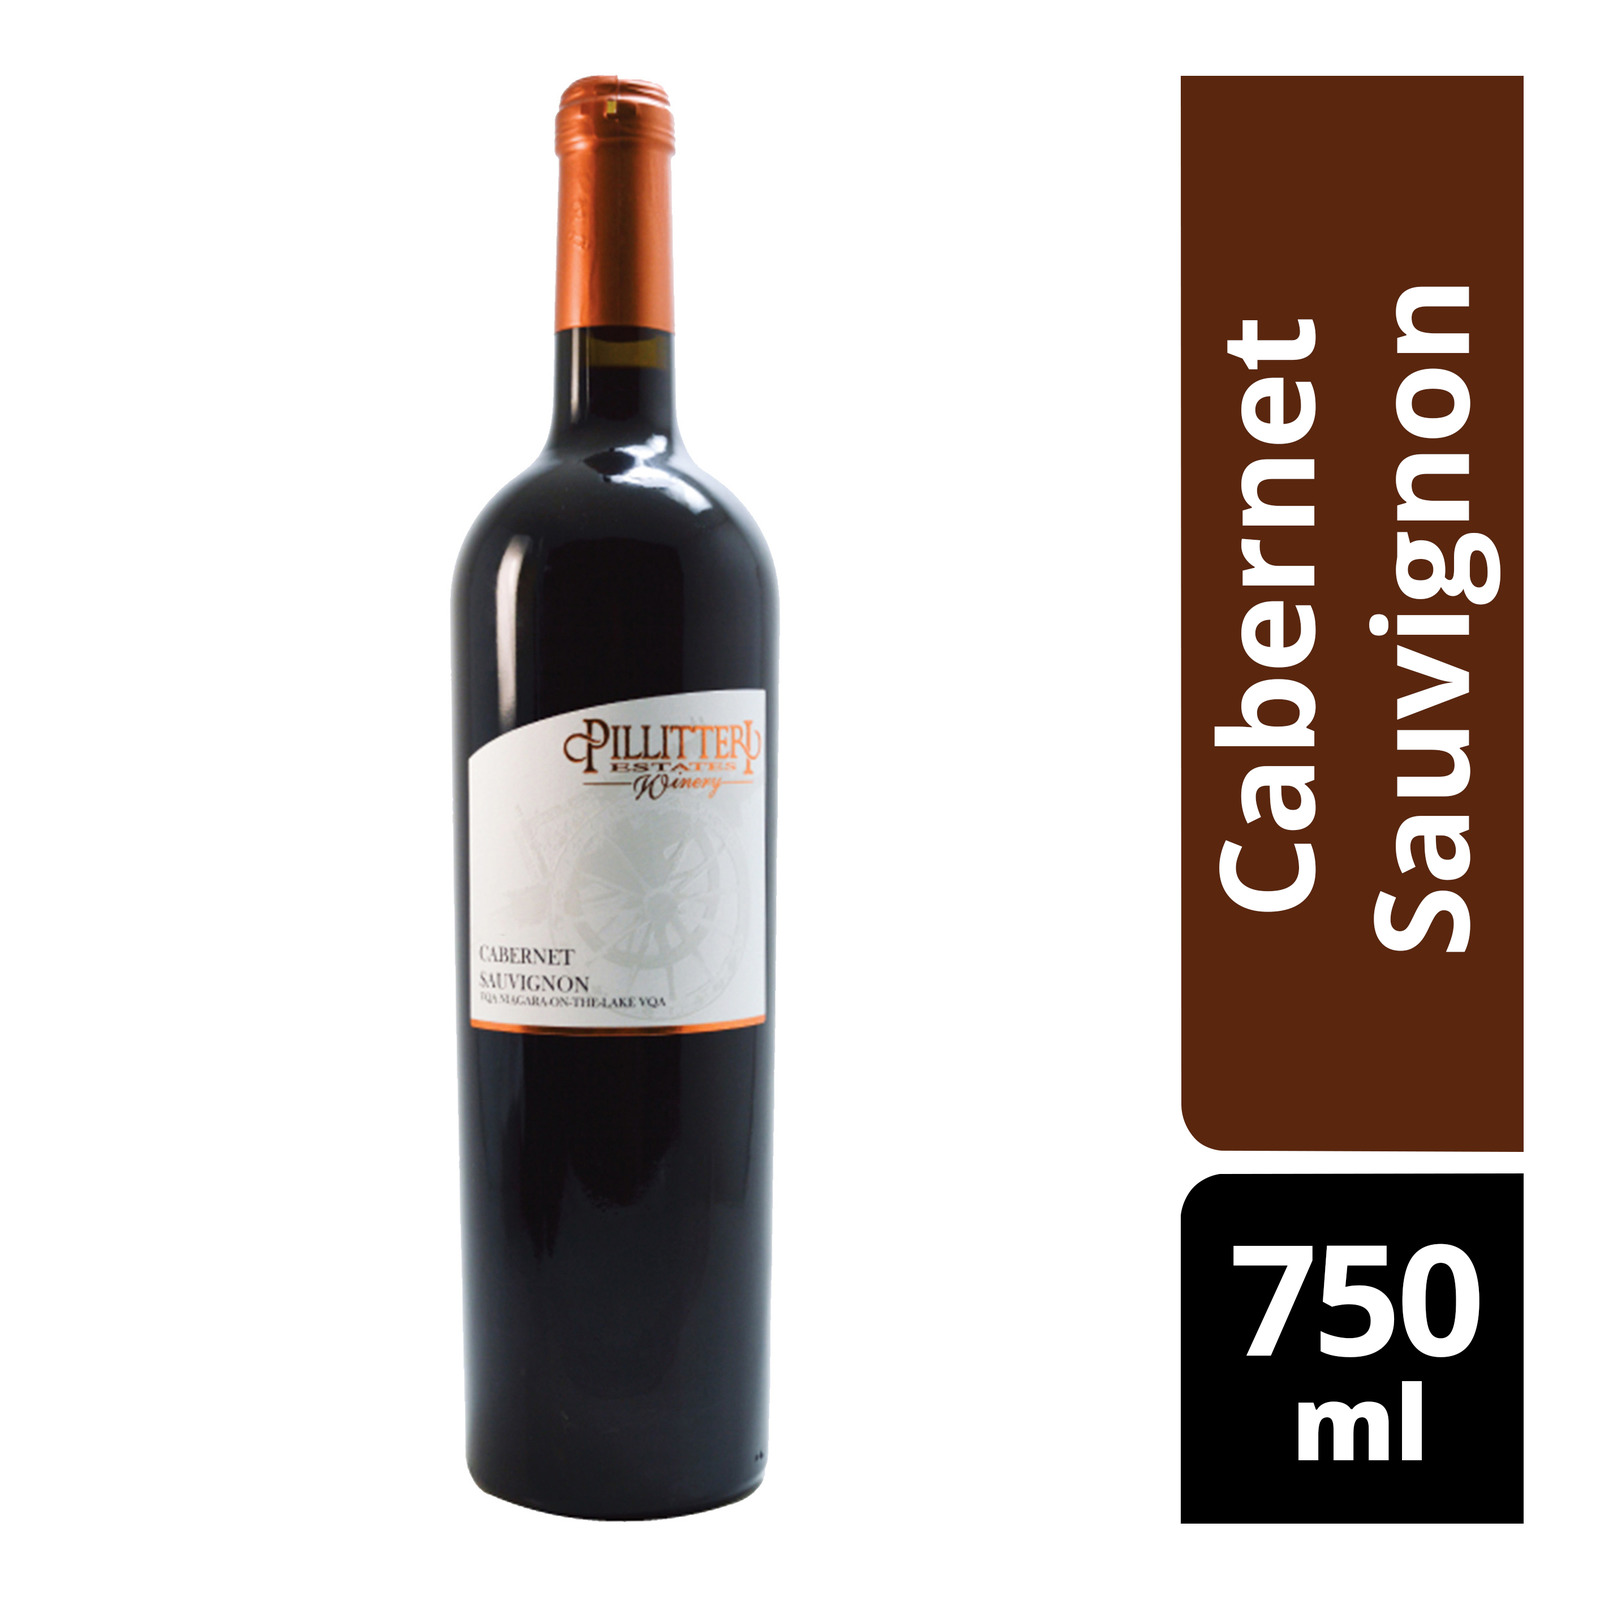 Pillitteri Estate Red Wine - Cabernet Sauvignon